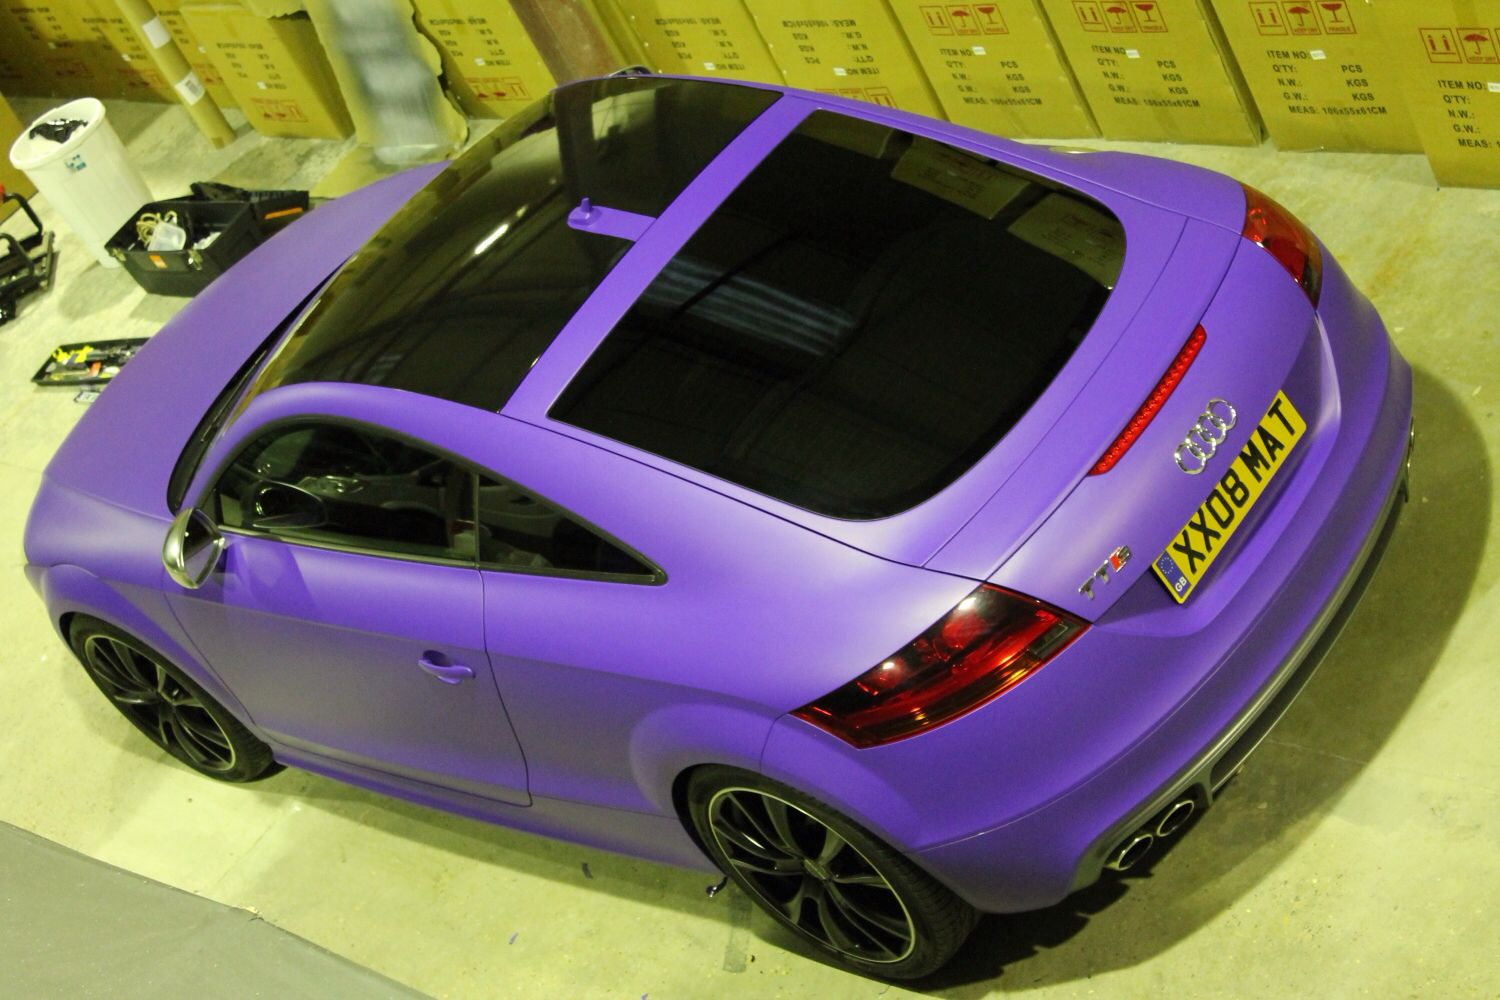 Purple Wrap With Black Gloss Roof Using 3m Material